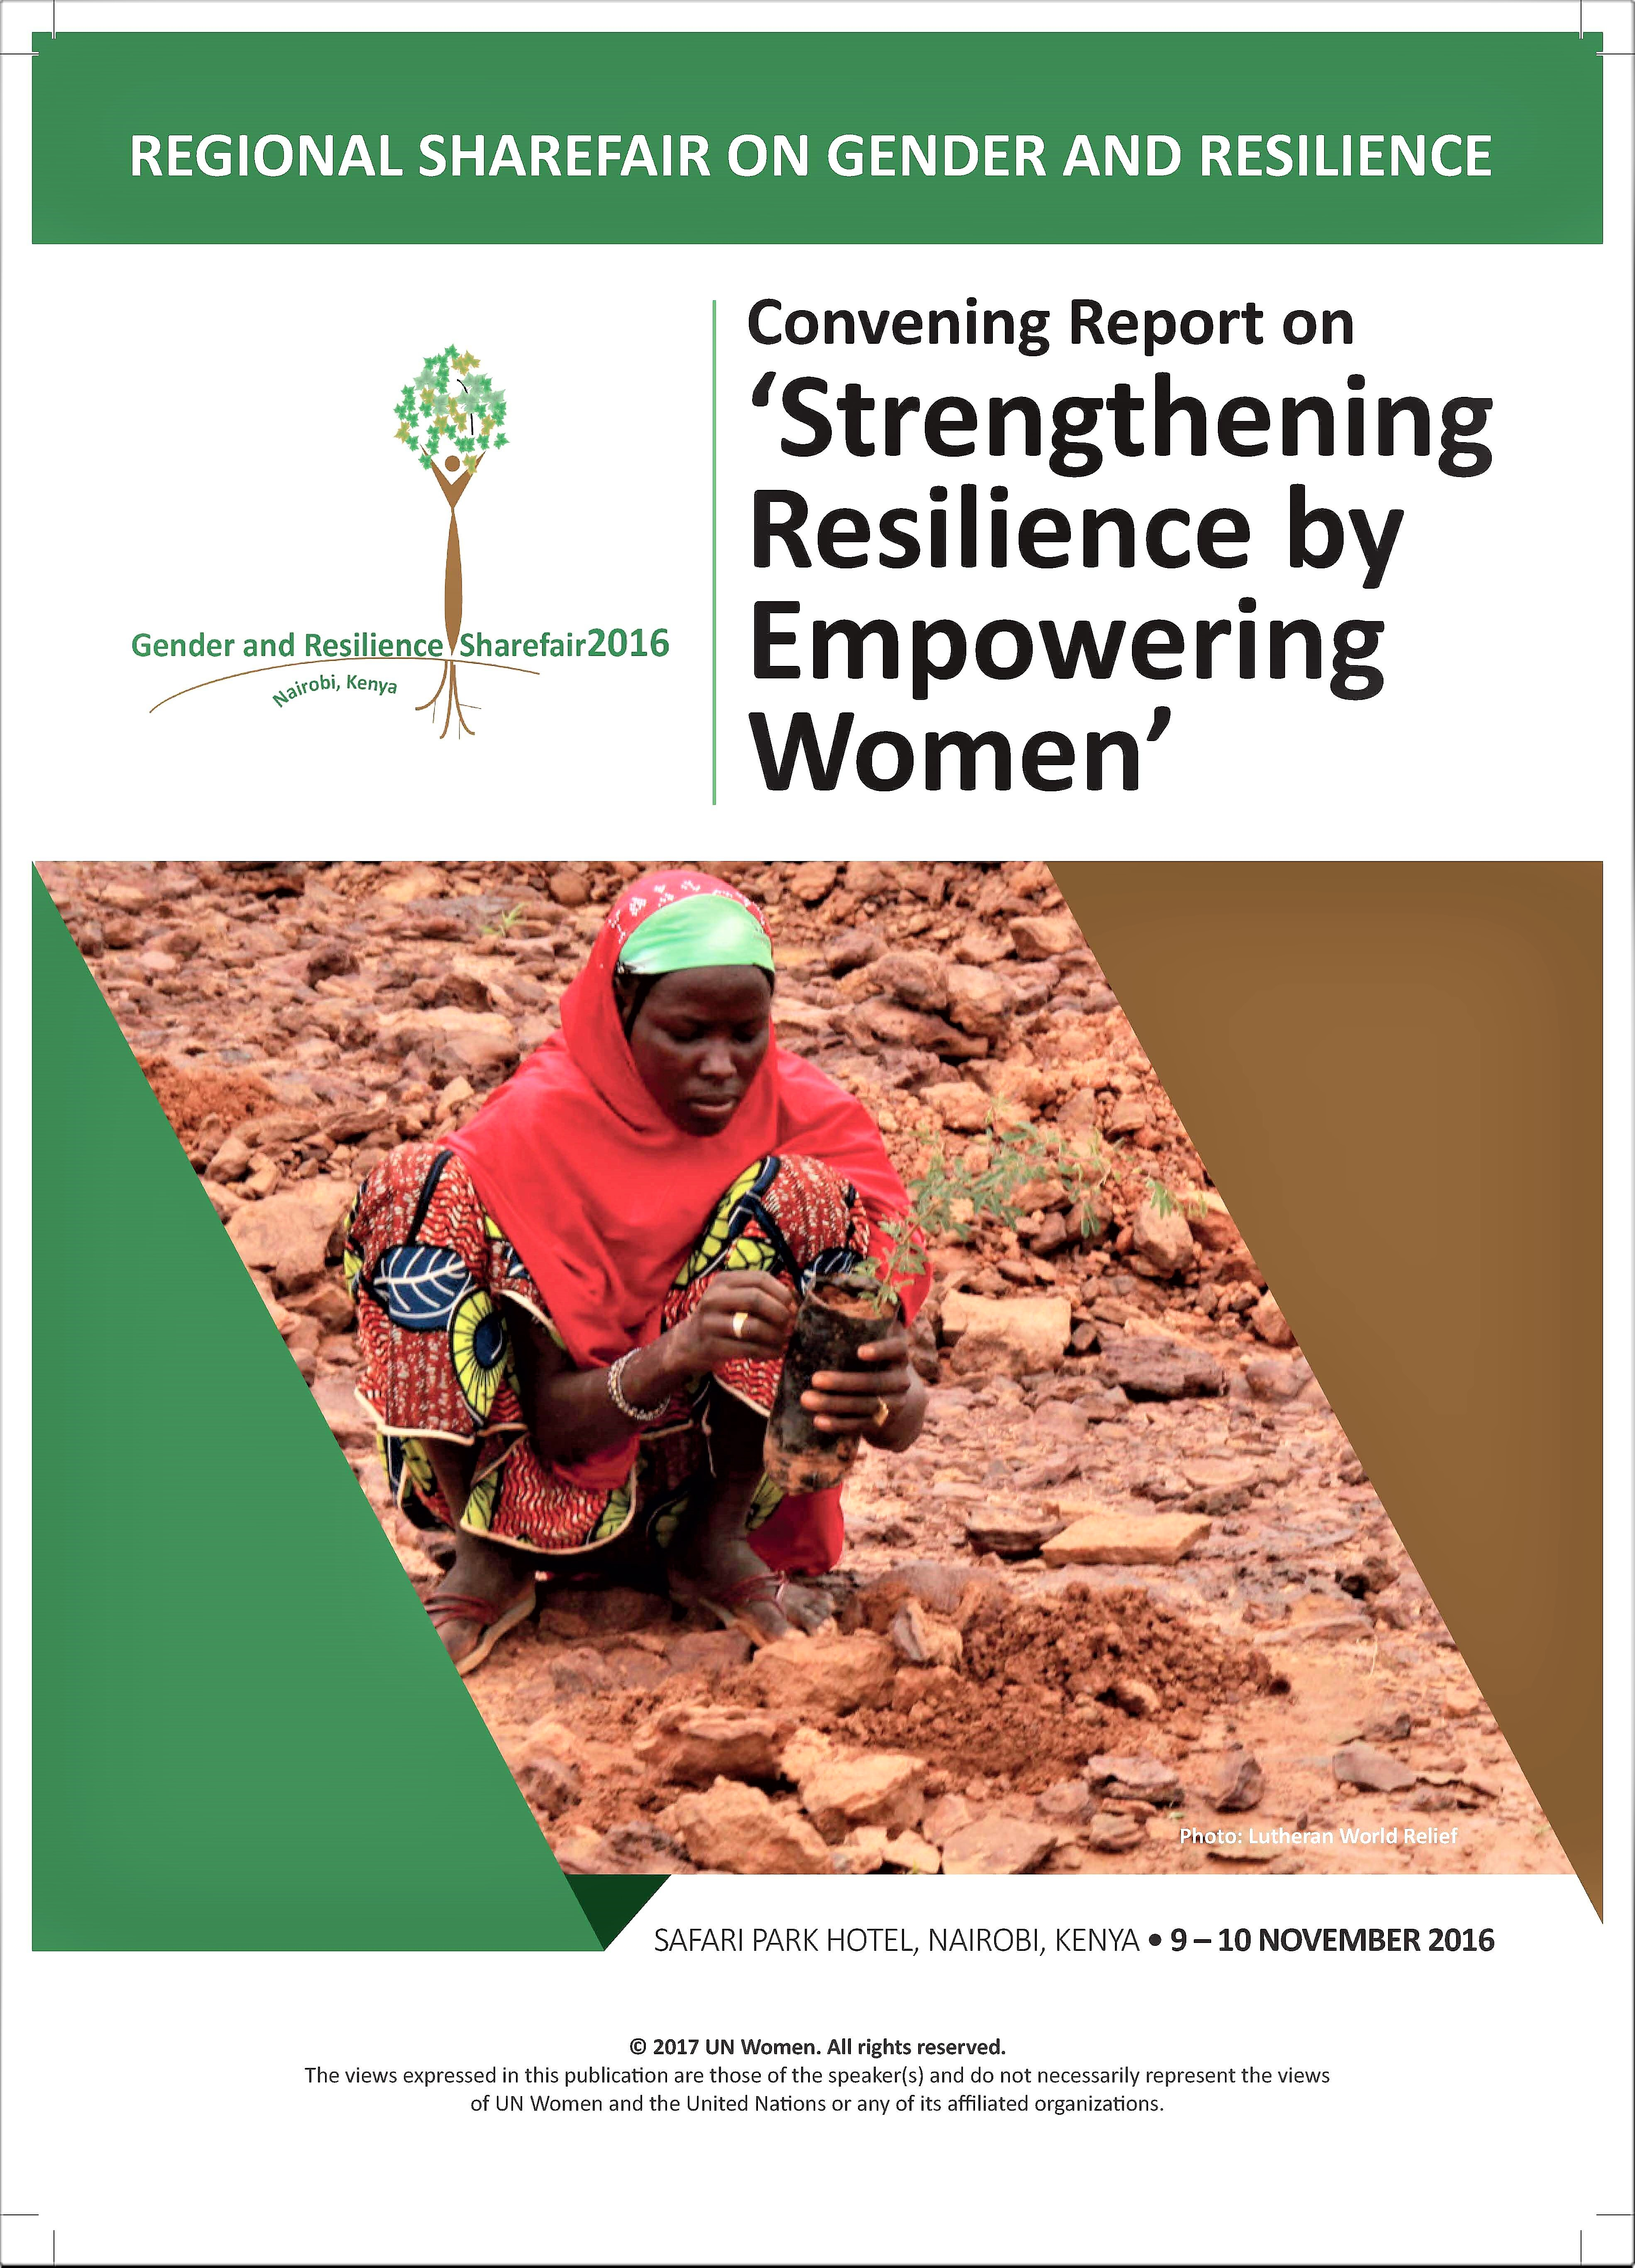 Regional Sharefair on Gender and Resilience in Africa 2016 Report